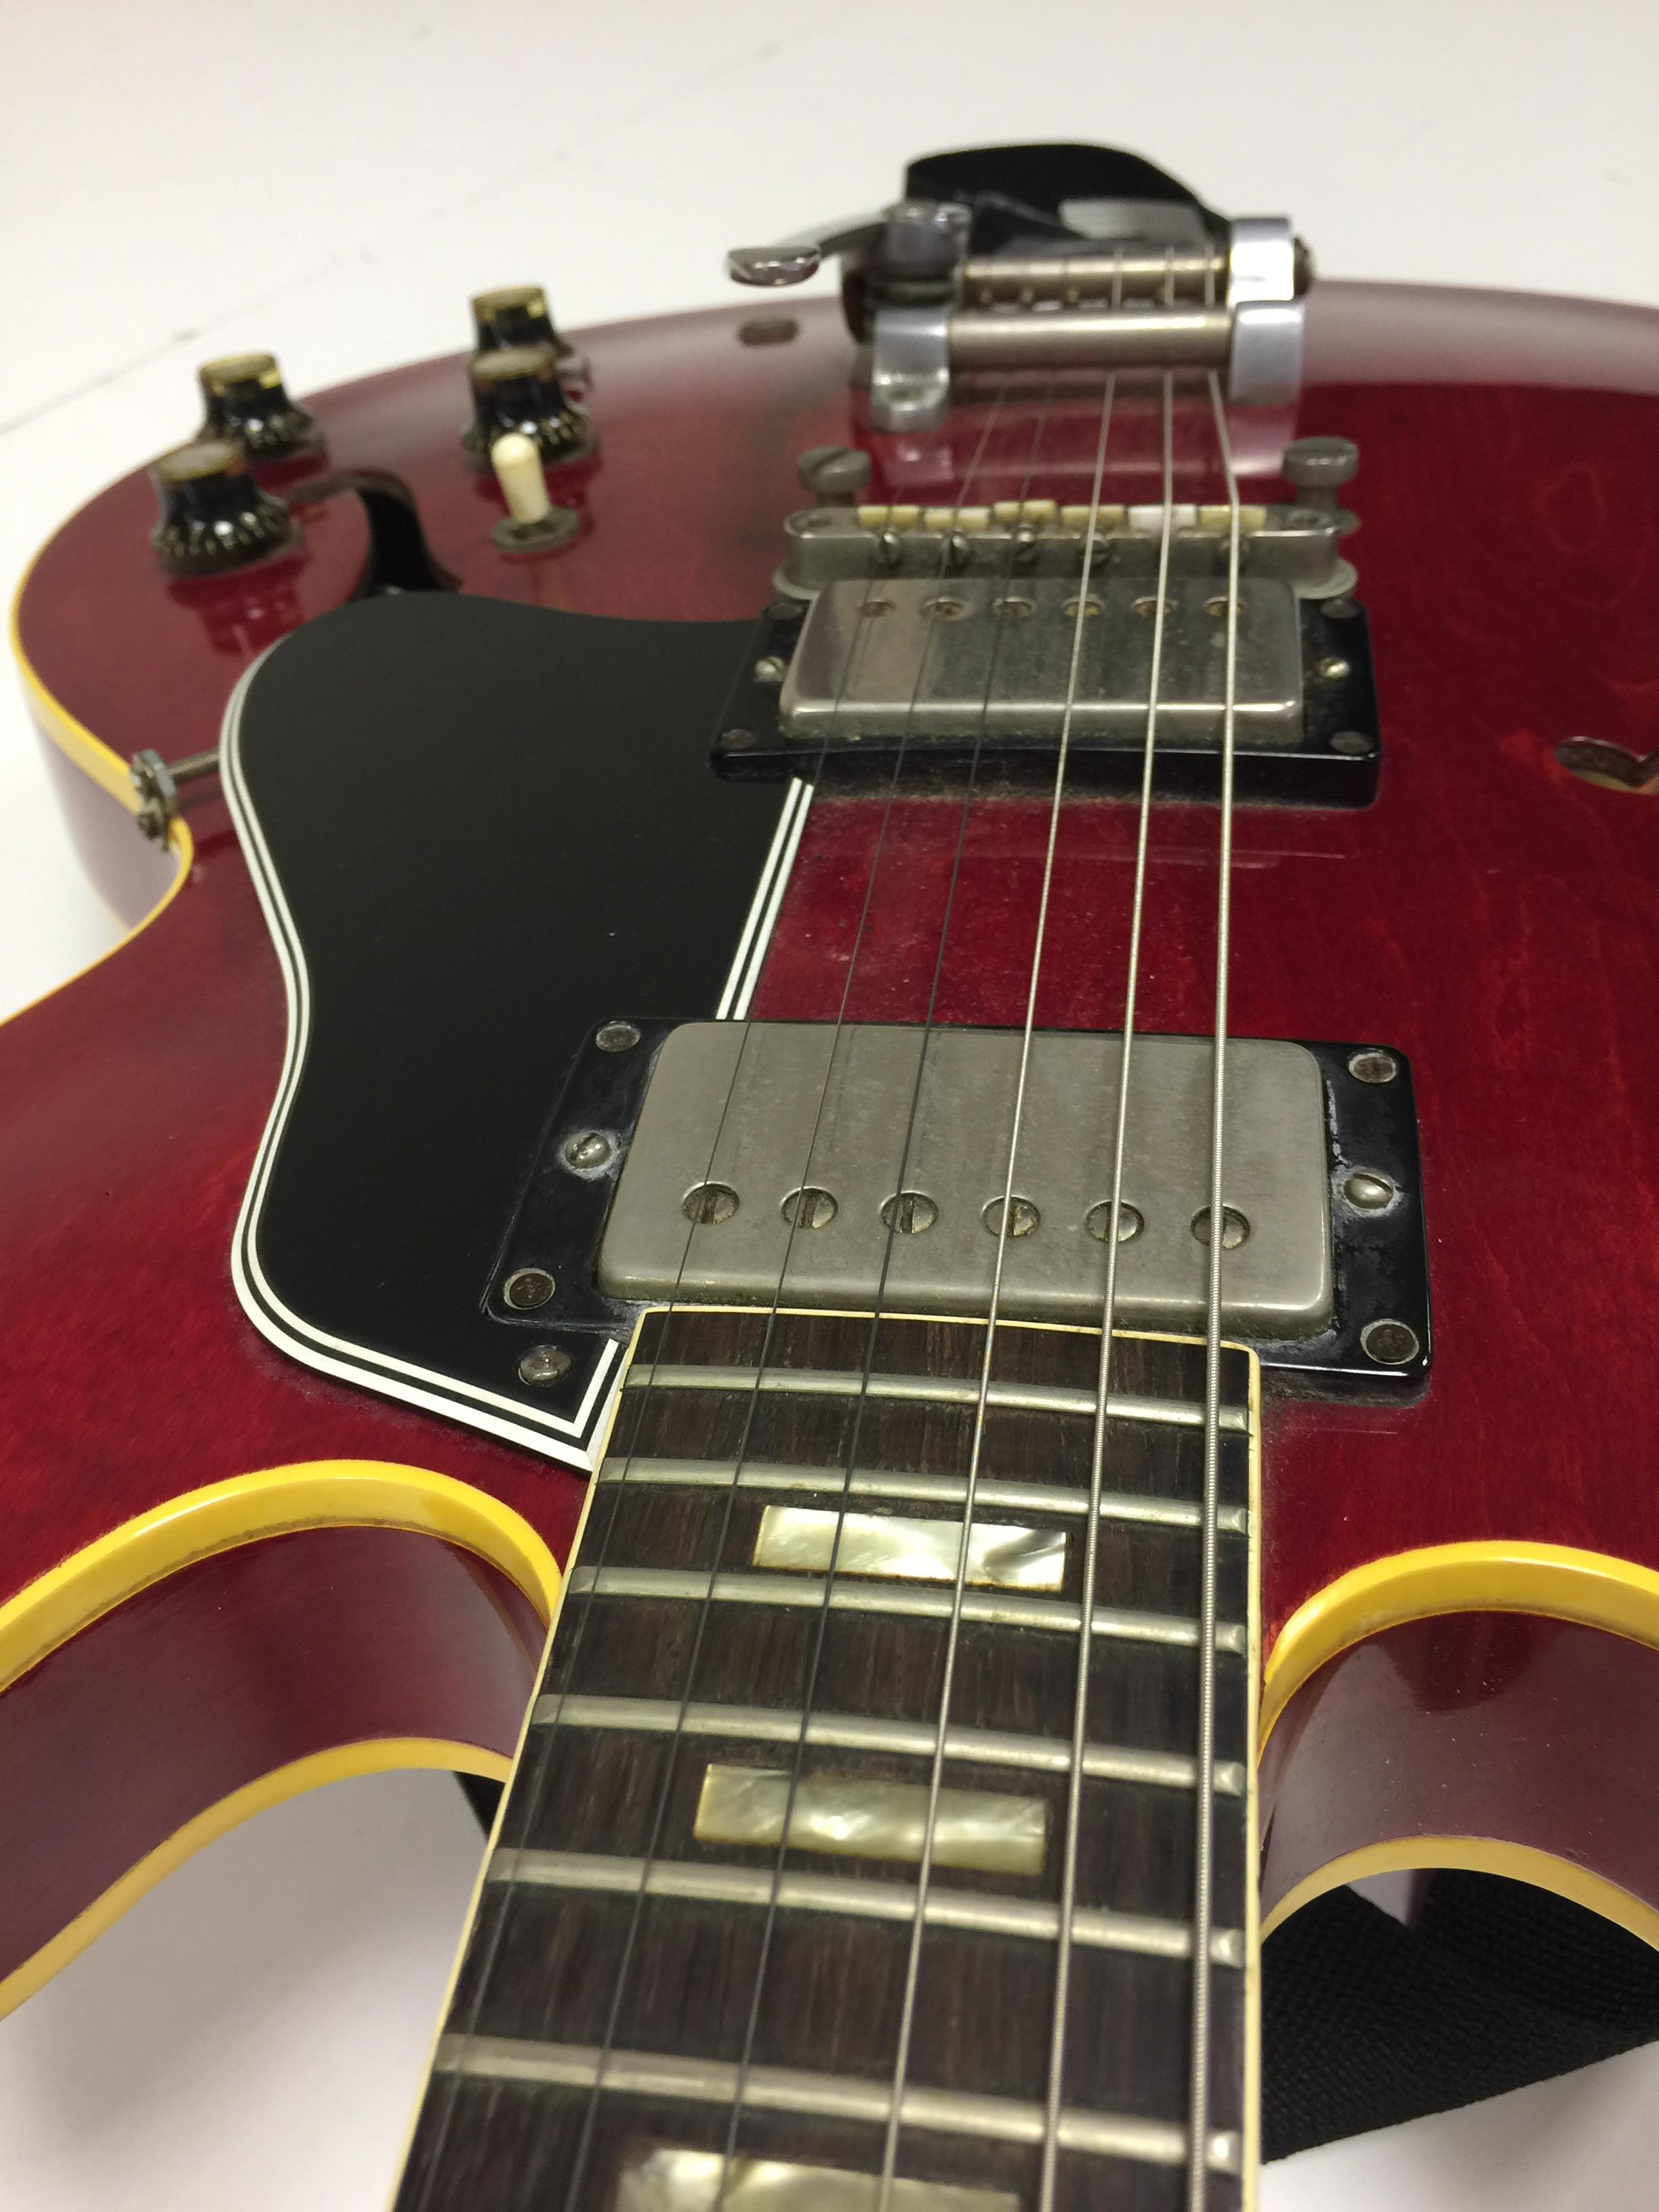 Lot 25 - 1963 GIBSON 335 CHERRY RED ELECTRIC GUITAR.